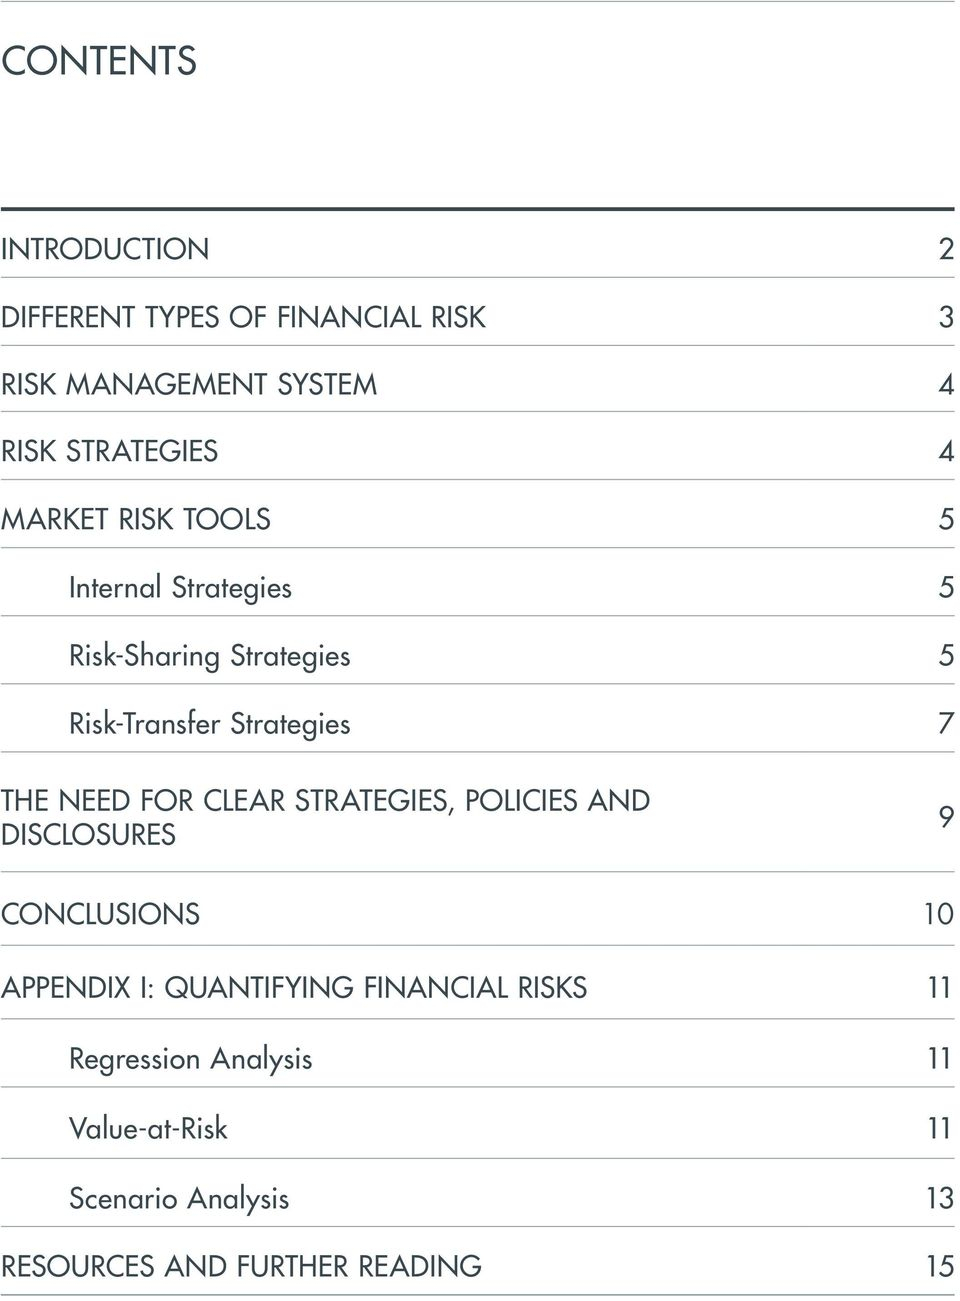 Hedging Currency Risks At Aifs Spreadsheet With Regard To Cgma Tool Financial Risk Management: Market Risk Tools And